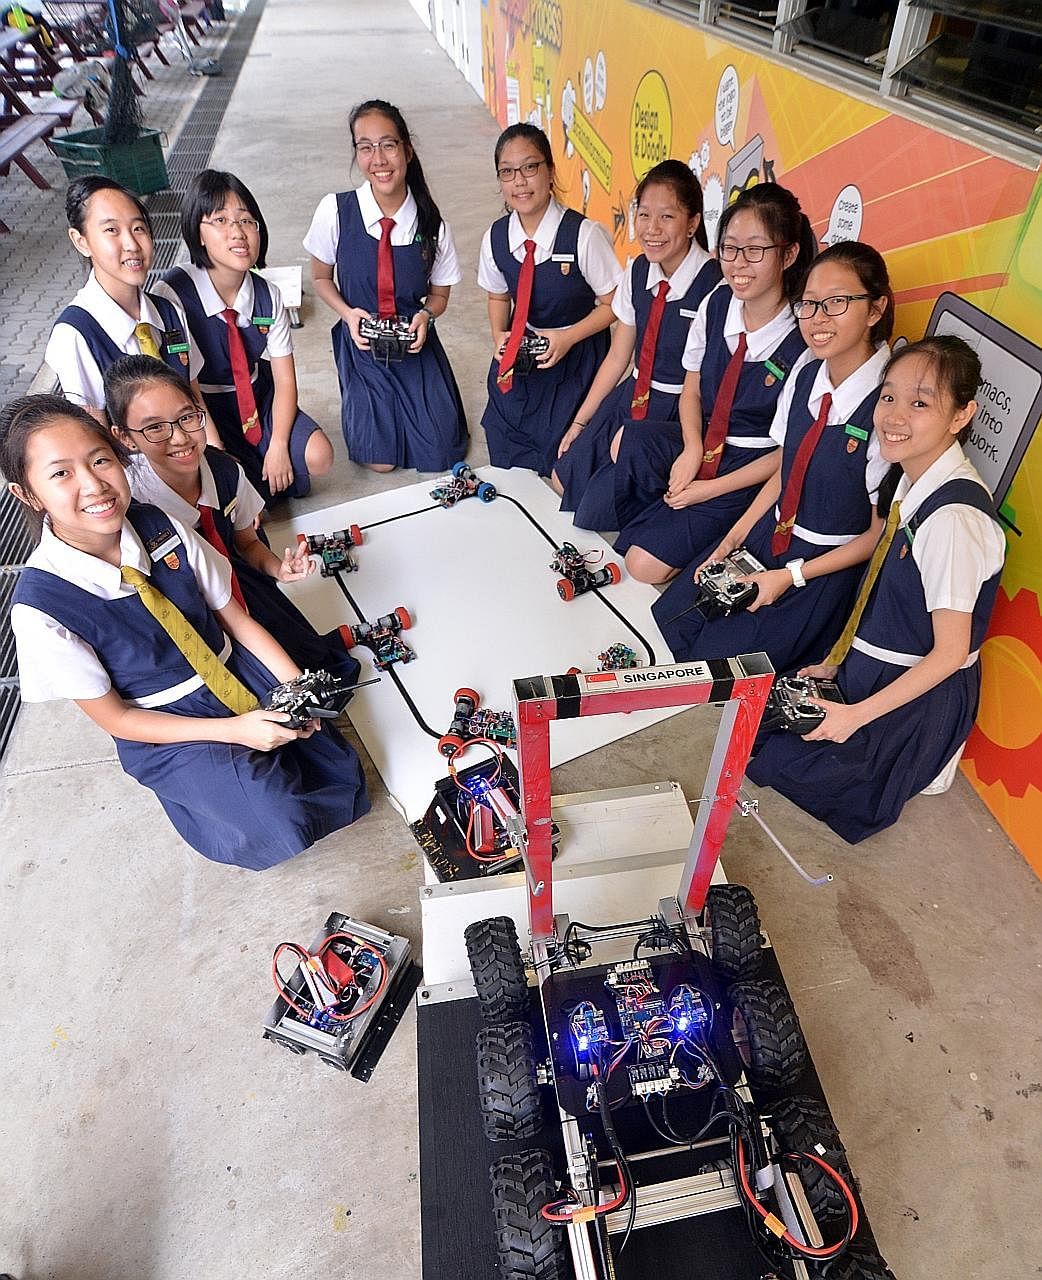 The PLMGS team at the August World Robot Games / Image Credit: The Straits Times